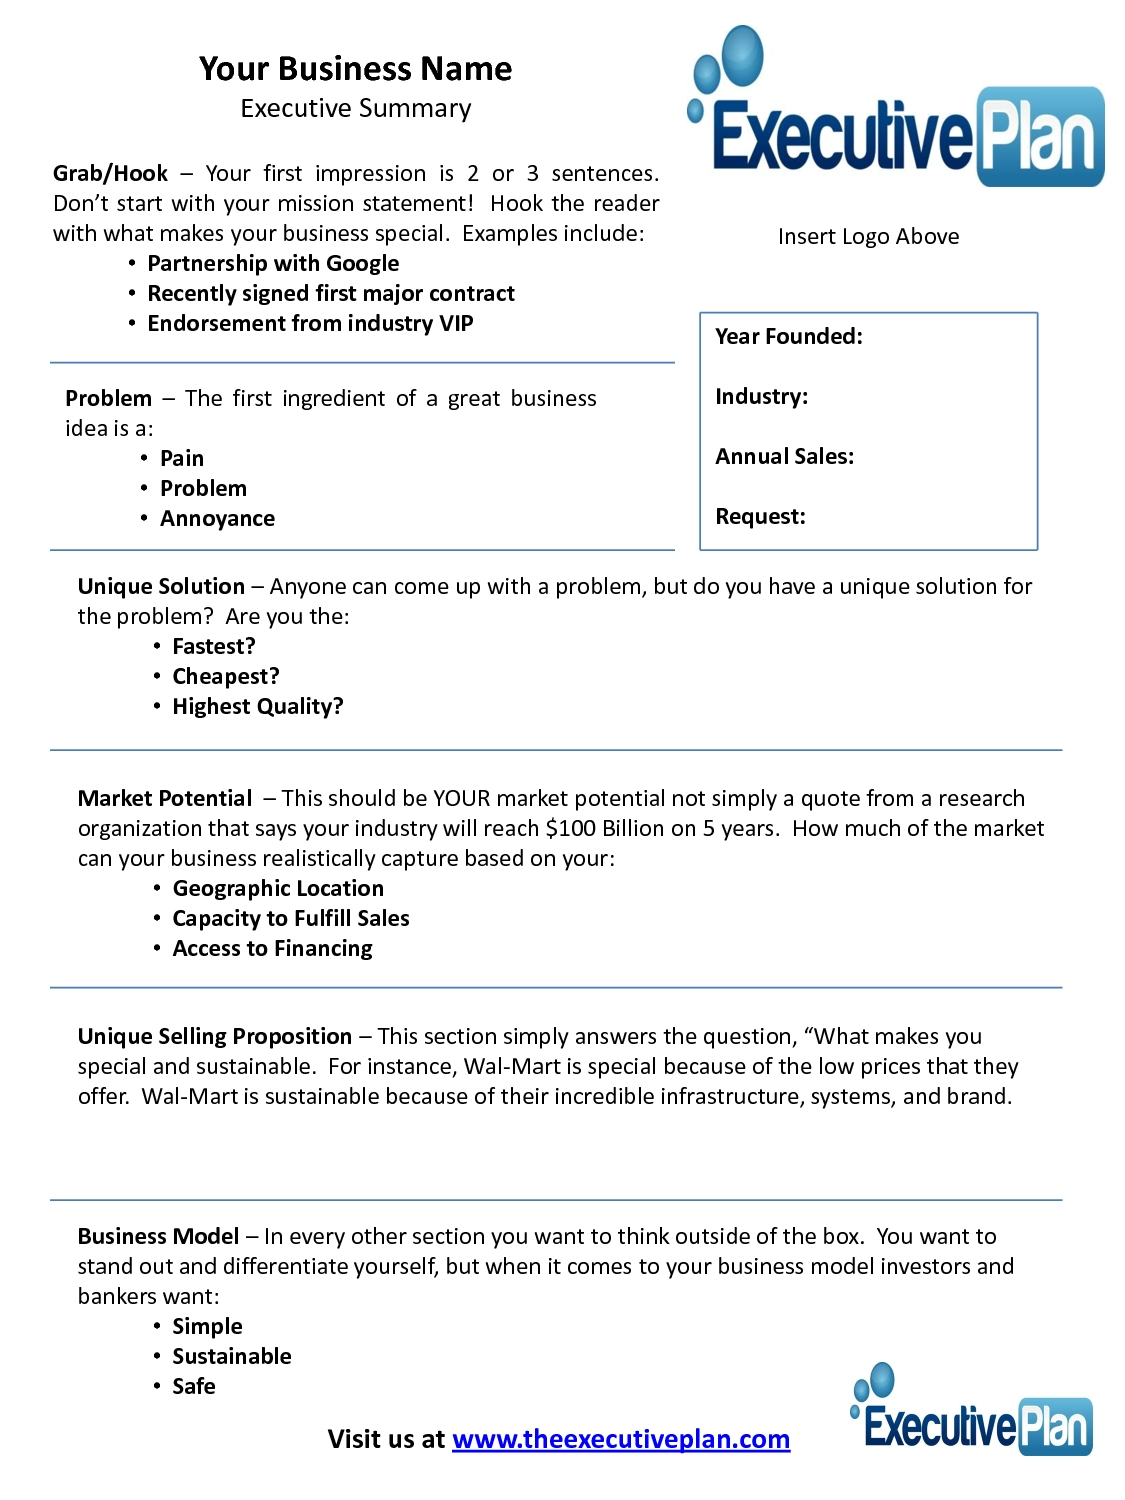 10 Unique A Great Business Idea Is examples of an executive summary executive summary template for 2020